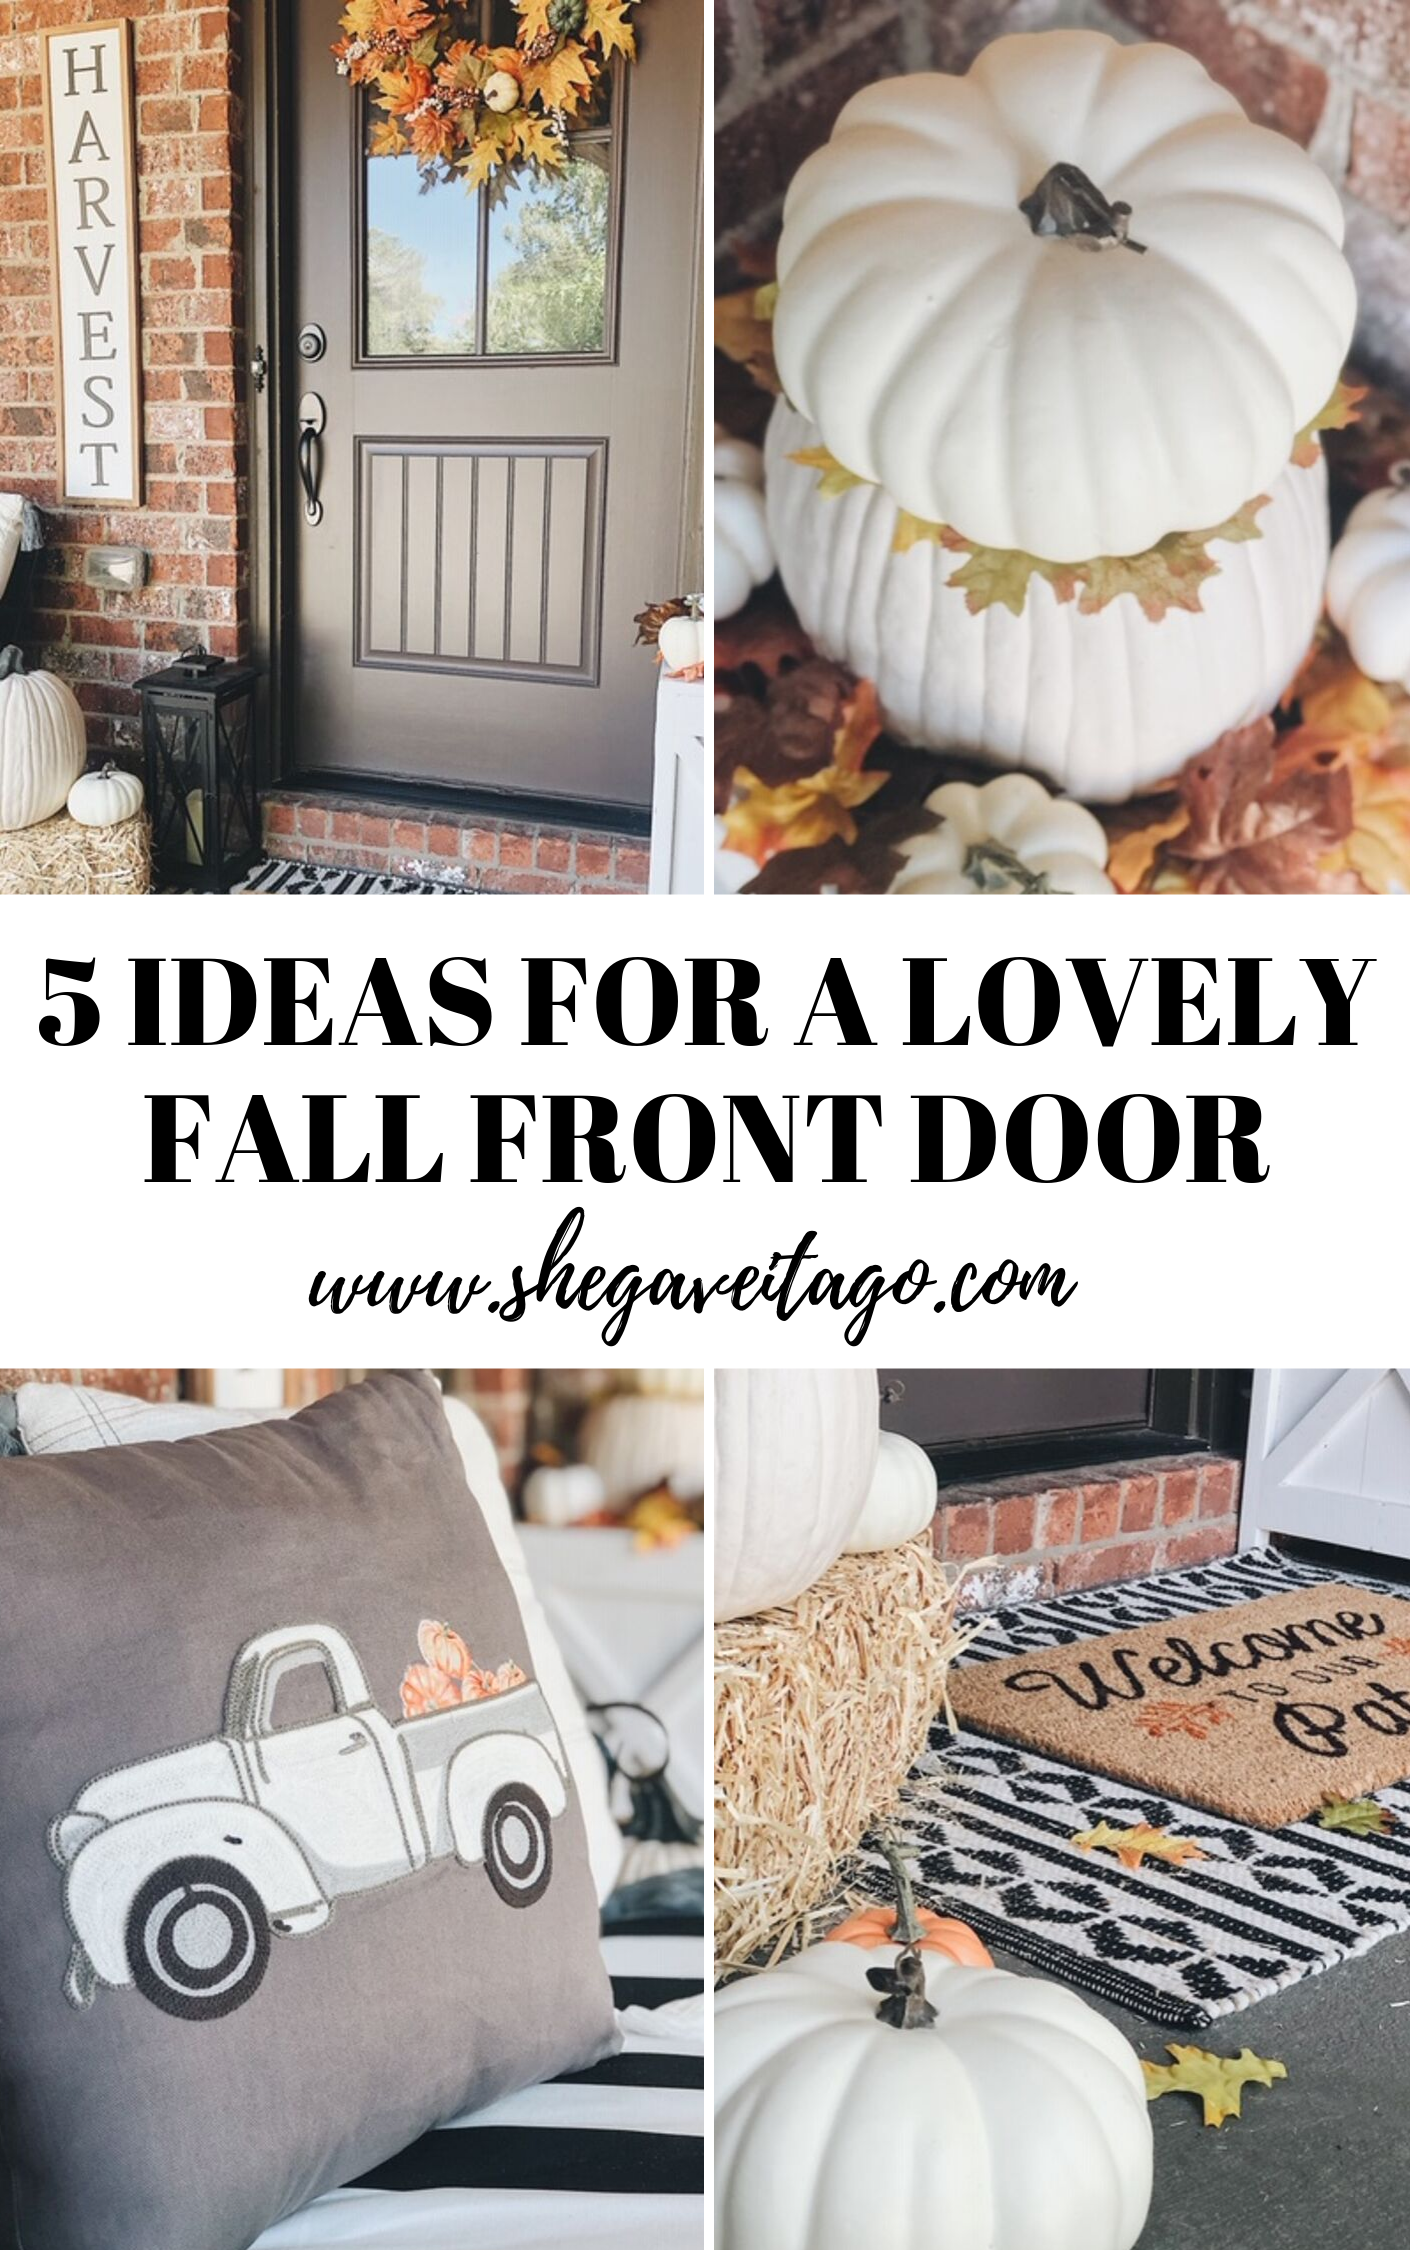 5 Ideas For A Lovely Fall Front Door.png